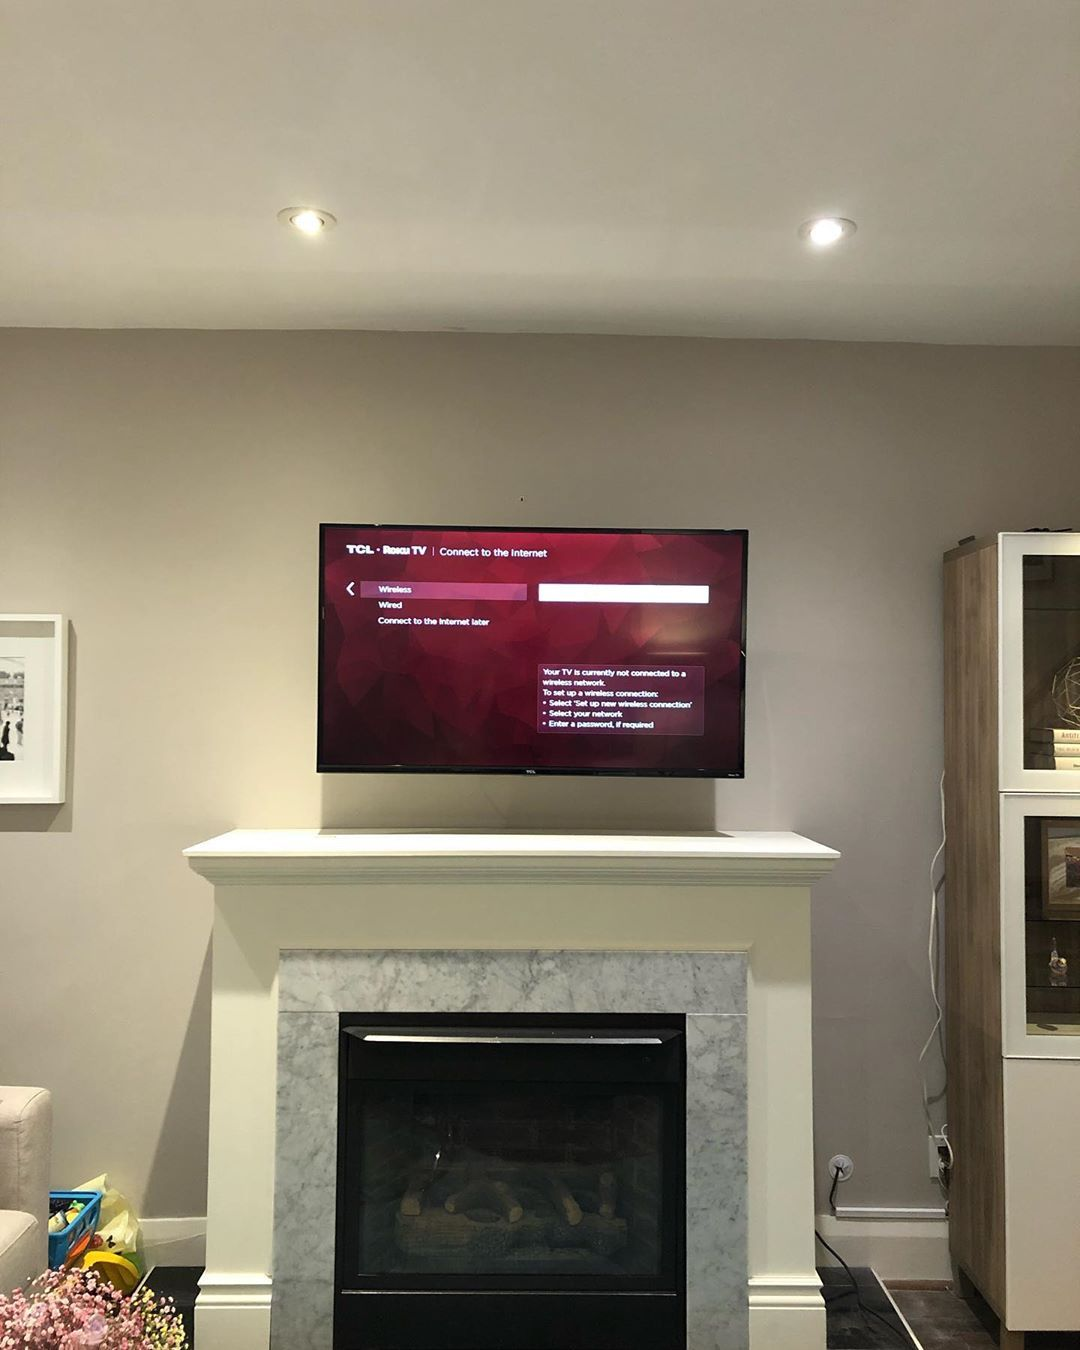 Tv Installed Above Fireplace Using Articulating And Concealed Mount Tvinstallation Smarthome Boardroom Fireplace Tv Tv Installation Fireplace Tv Wall Mount